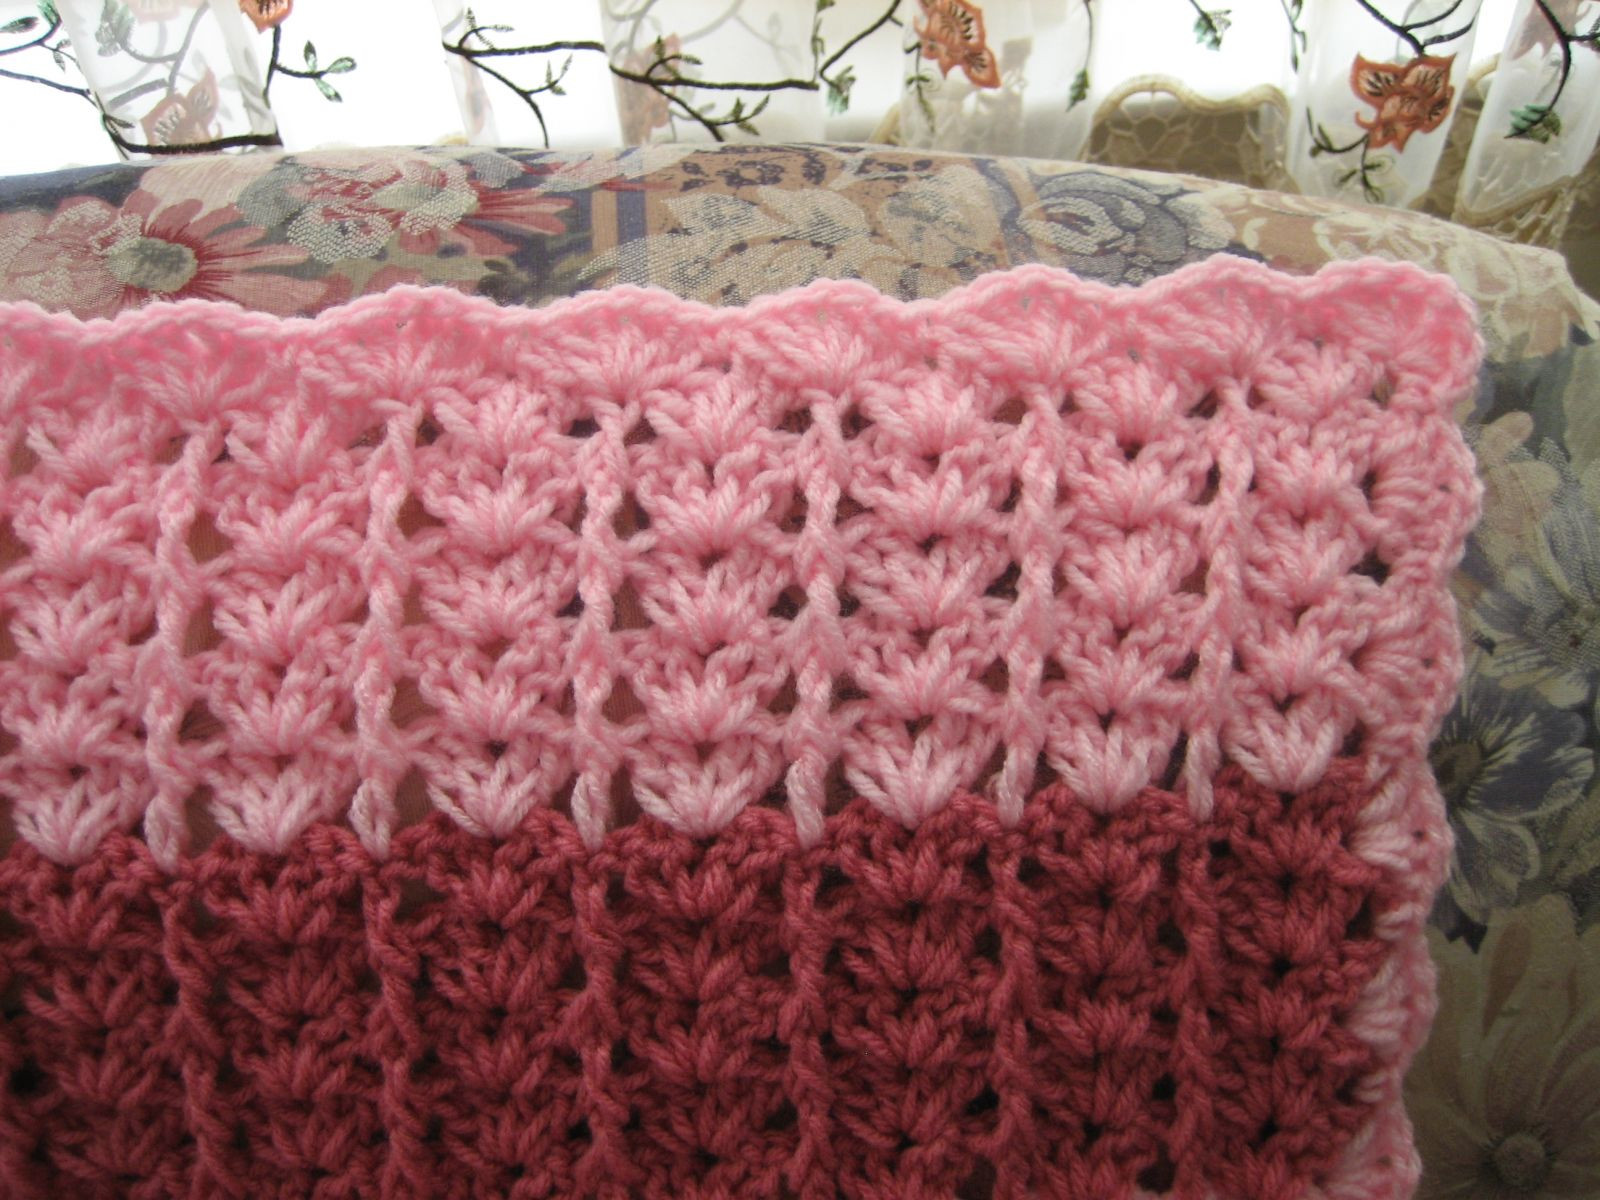 Shell Afghan Crochet Pattern Best Of Lacy Shades Of Pink Shells Afghan Of Amazing 41 Photos Shell Afghan Crochet Pattern